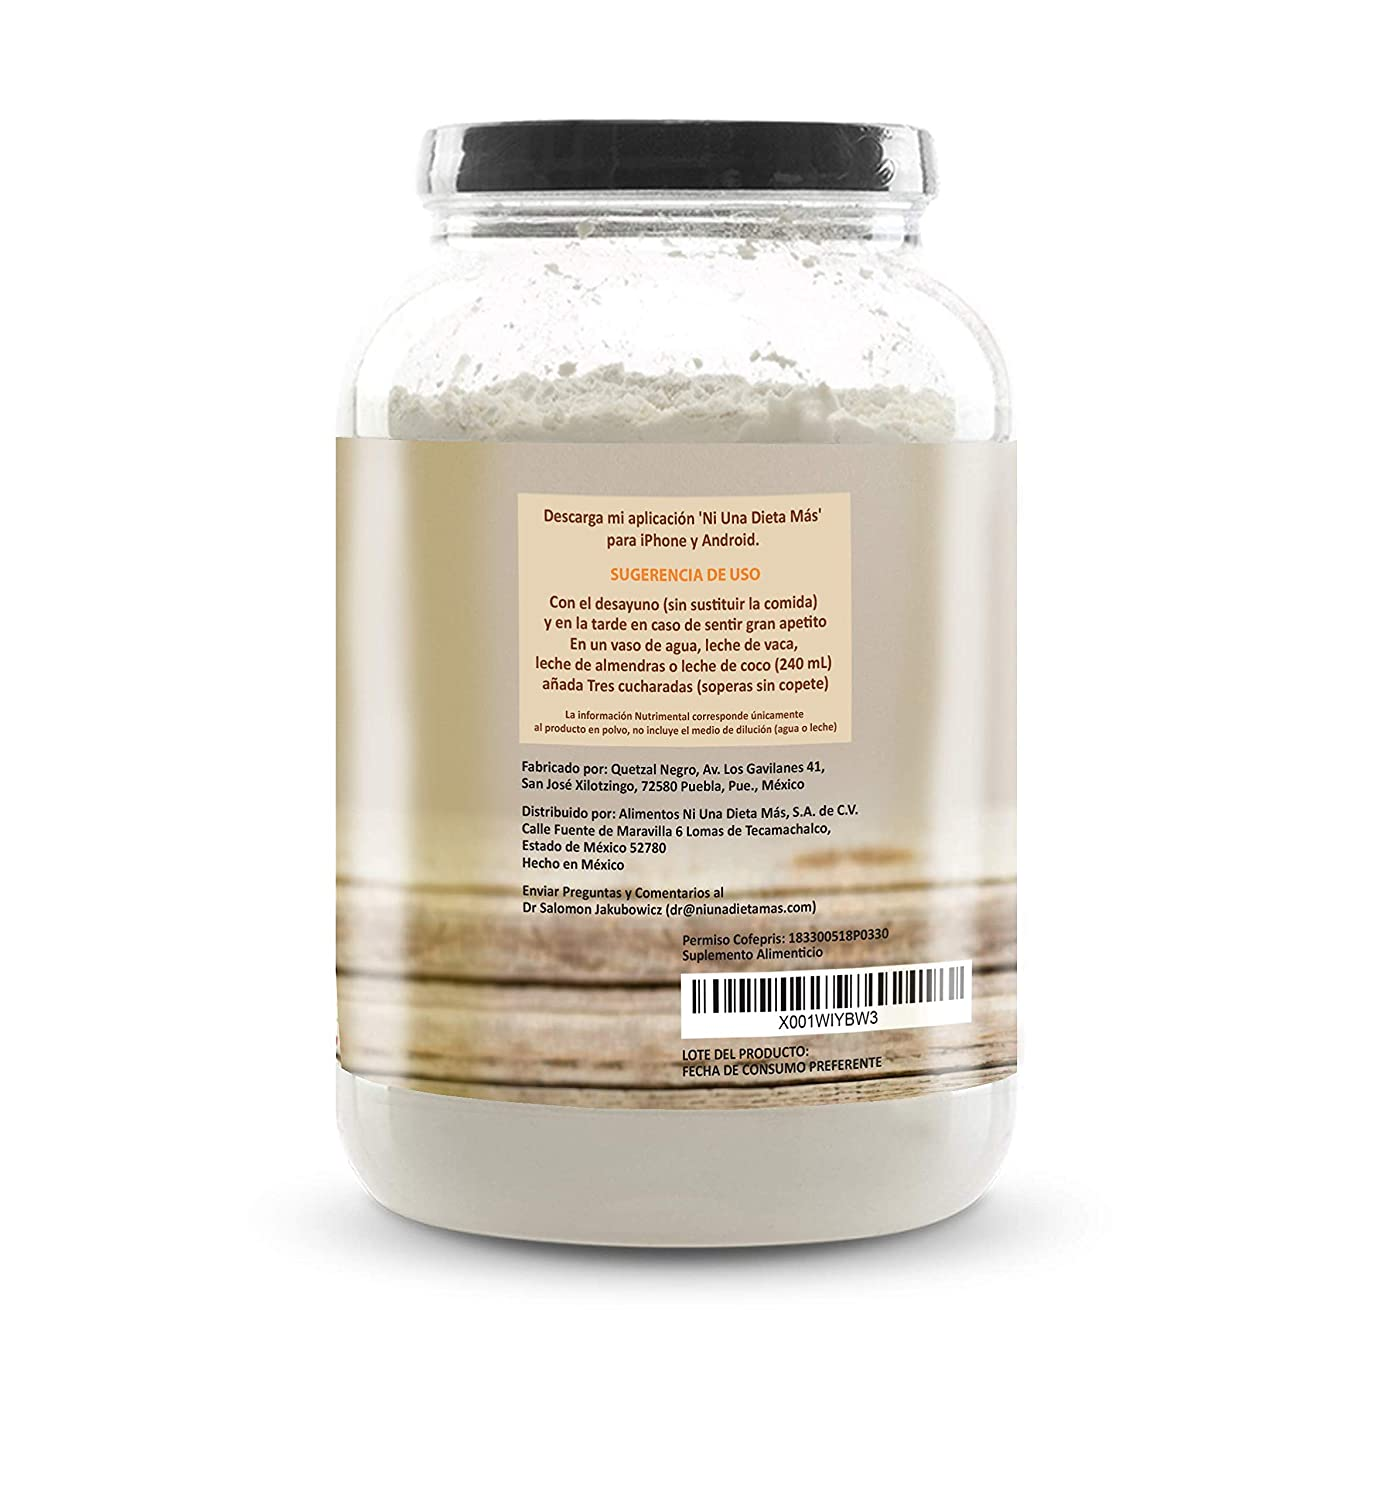 Amazon.com: Ni Una Dieta Más (vanilla) whey protein isolate: Health & Personal Care